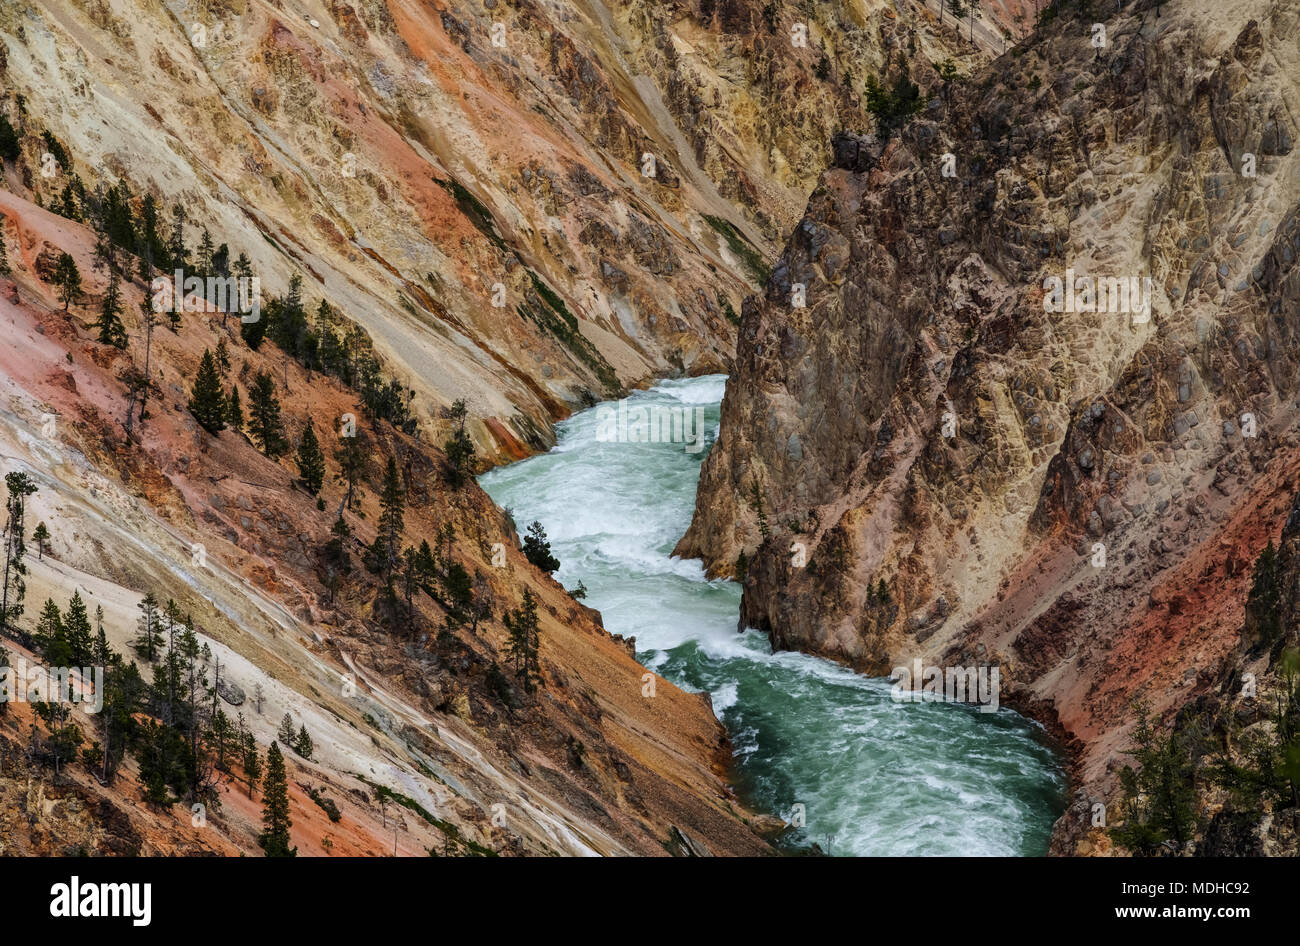 Yellowstone River qui coule à travers le canyon, le Parc National de Yellowstone, Wyoming, United States of America Photo Stock